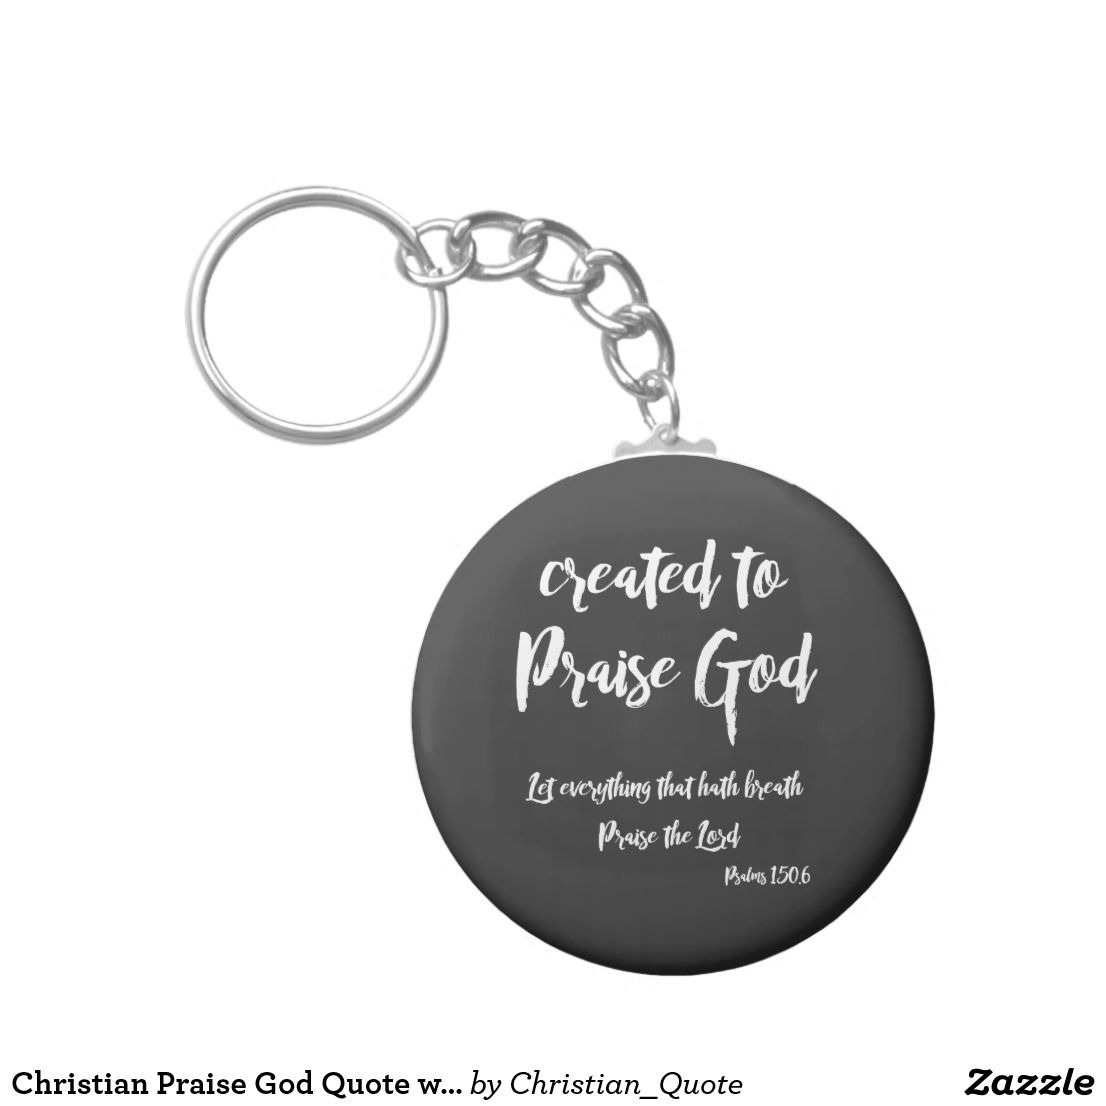 Christian praise god quote with bible verse keychain